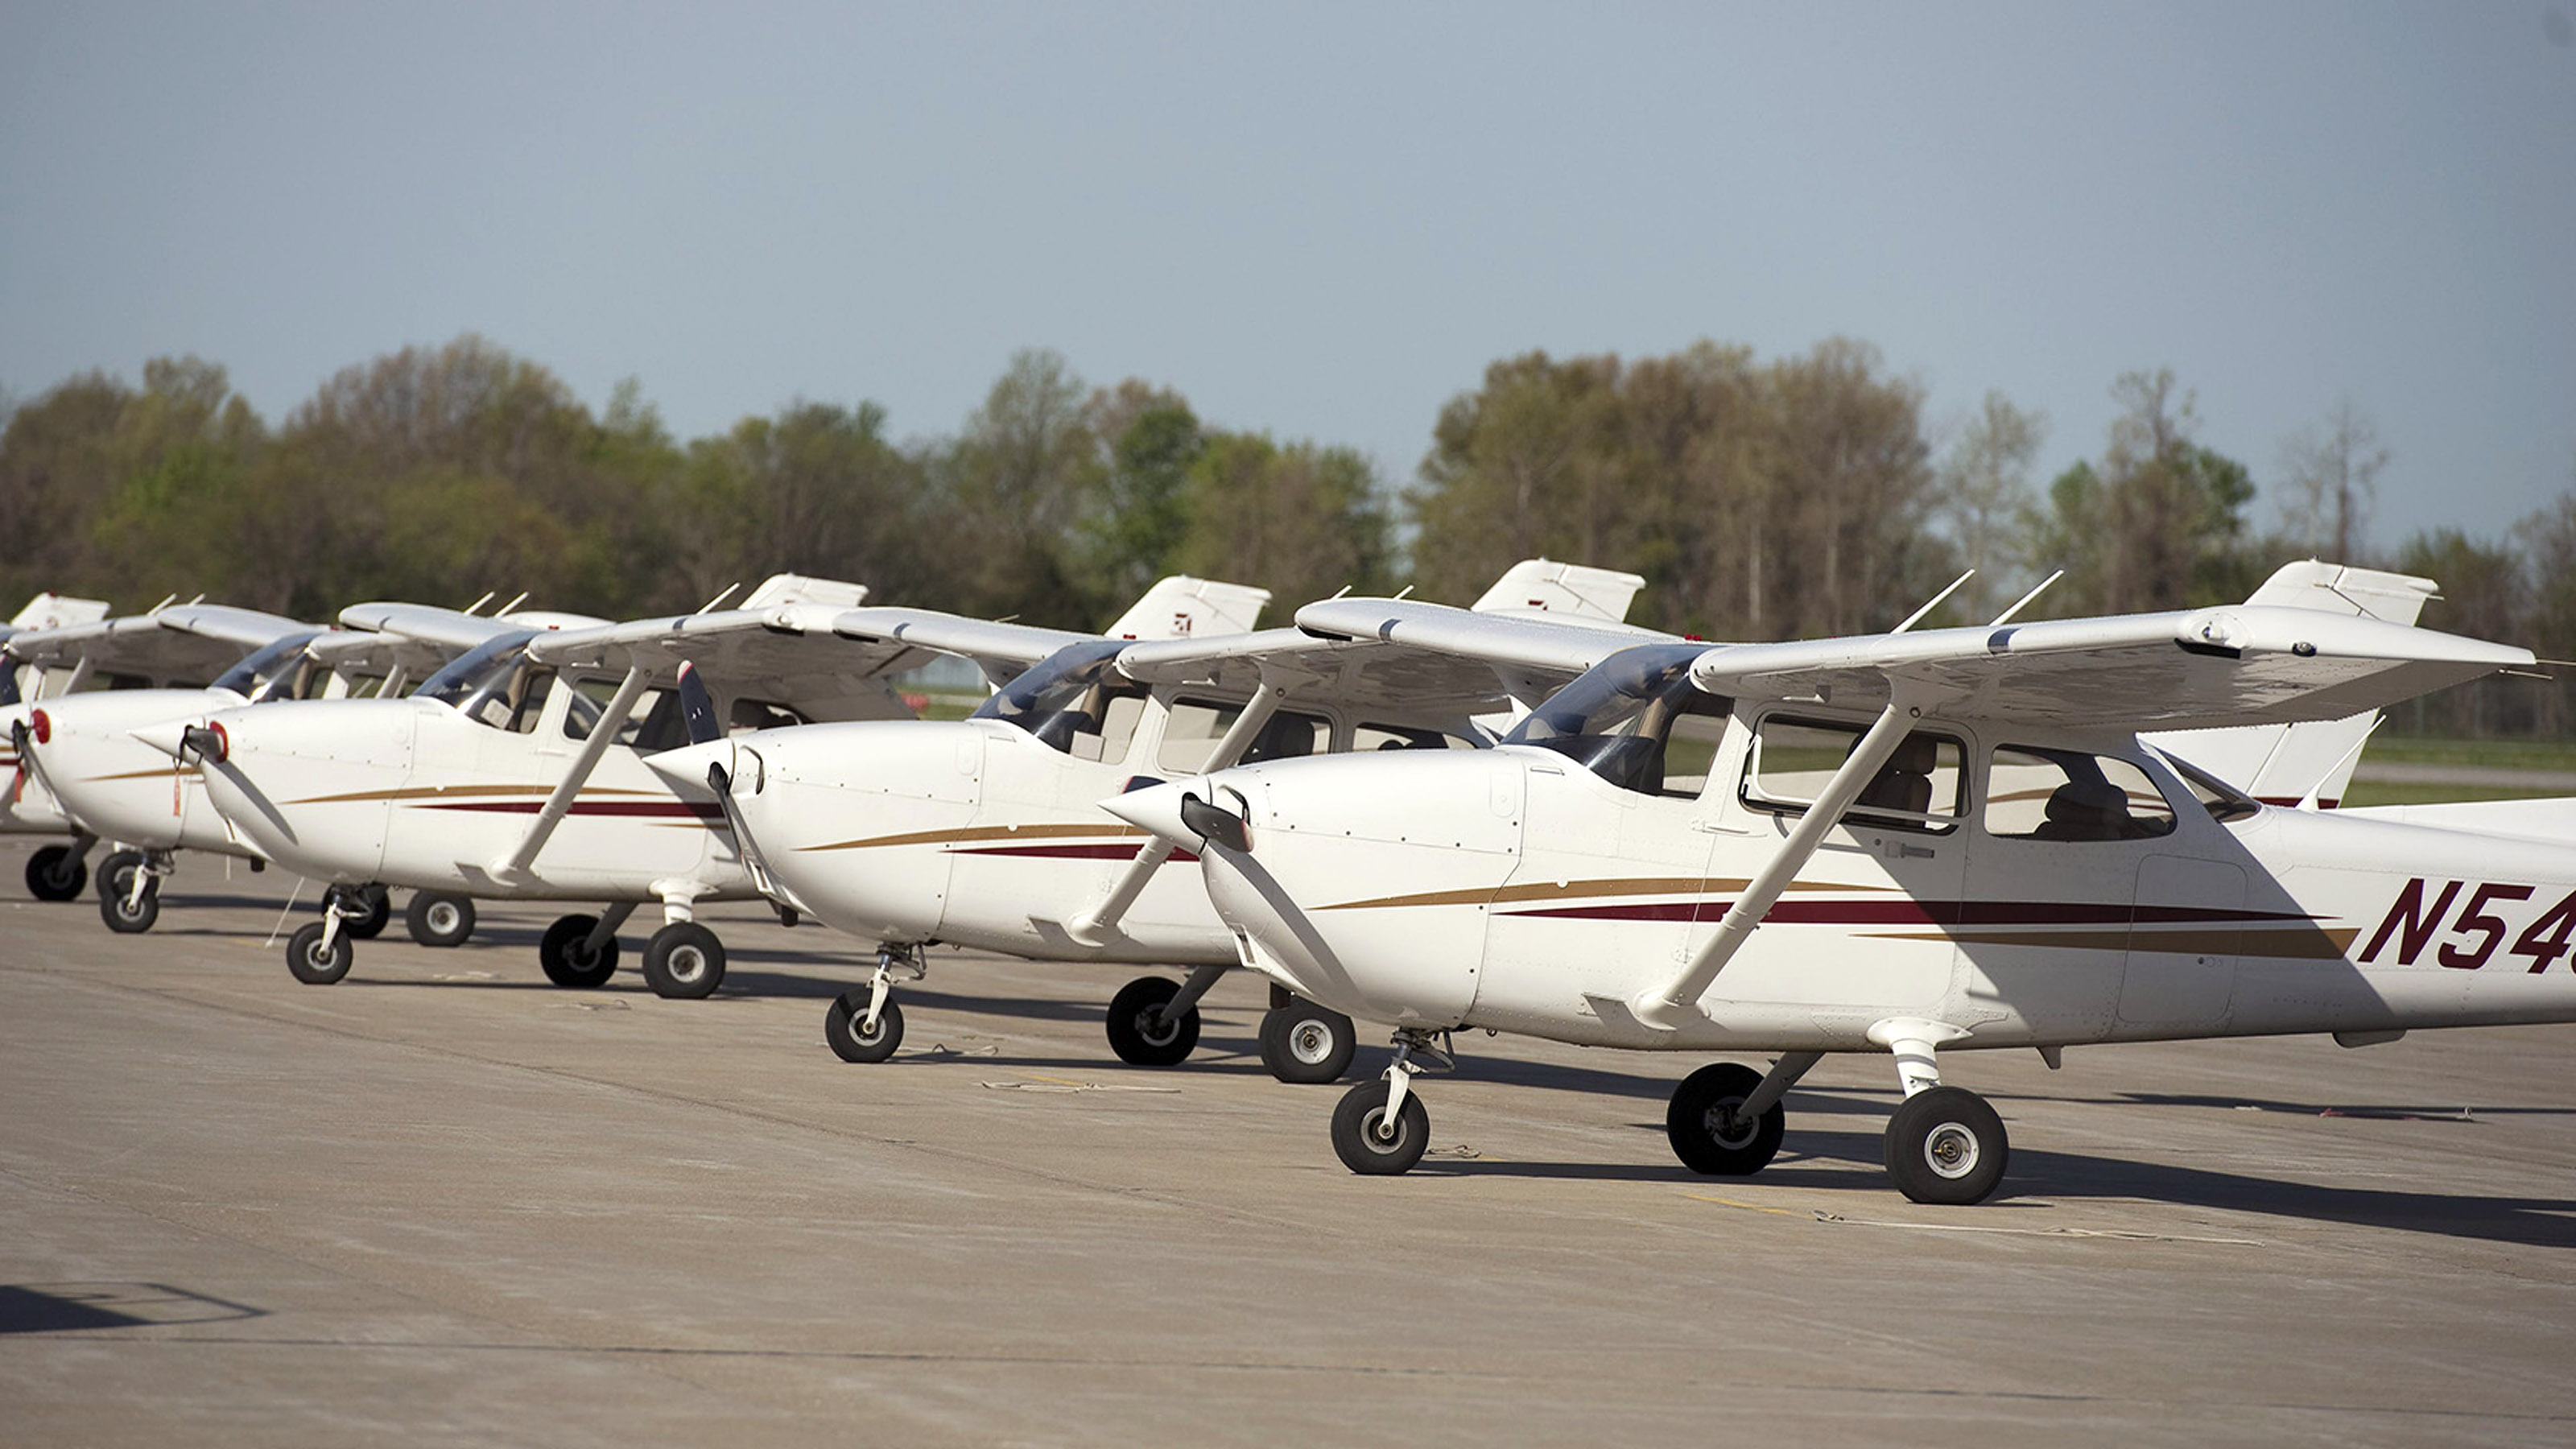 Cessna 172s in the Southern Illinois University Carbondale fleet line the university's ramp at Southern Illinois Airport in Carbondale/Murphysboro, Illinois. Alumni donations are helping to equip the university's fleet with ADS-B hardware in advance of the FAA mandate. Photo courtesy of Southern Illinois University.